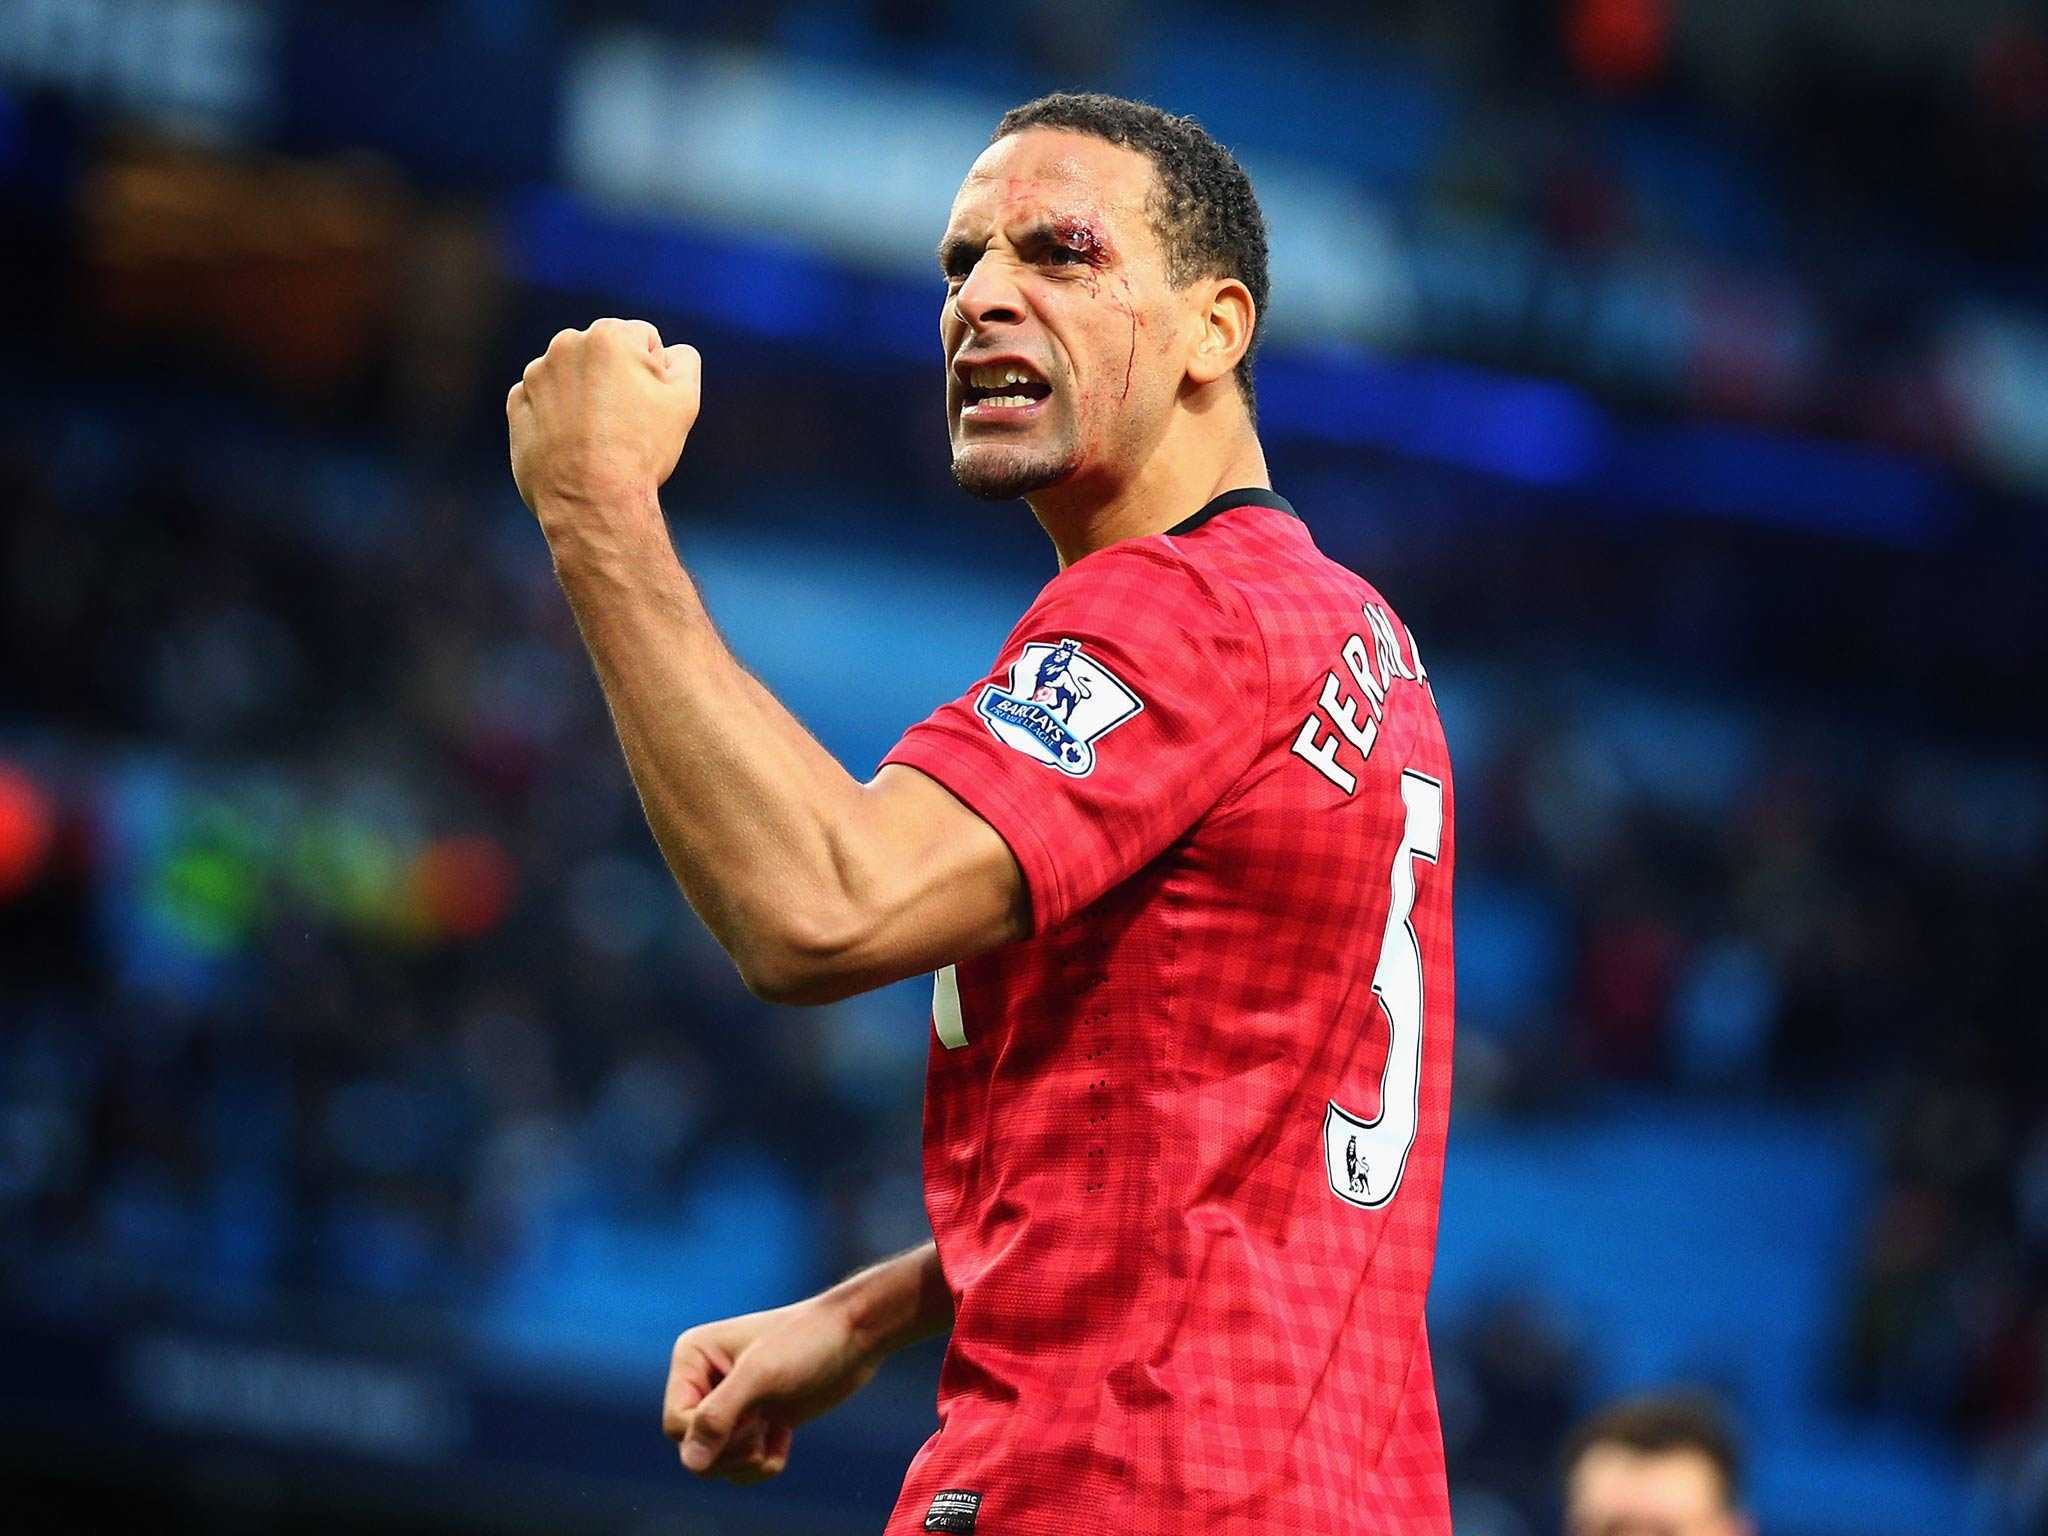 Ex Footballer Rio Ferdinand To Turn Professional in Boxing